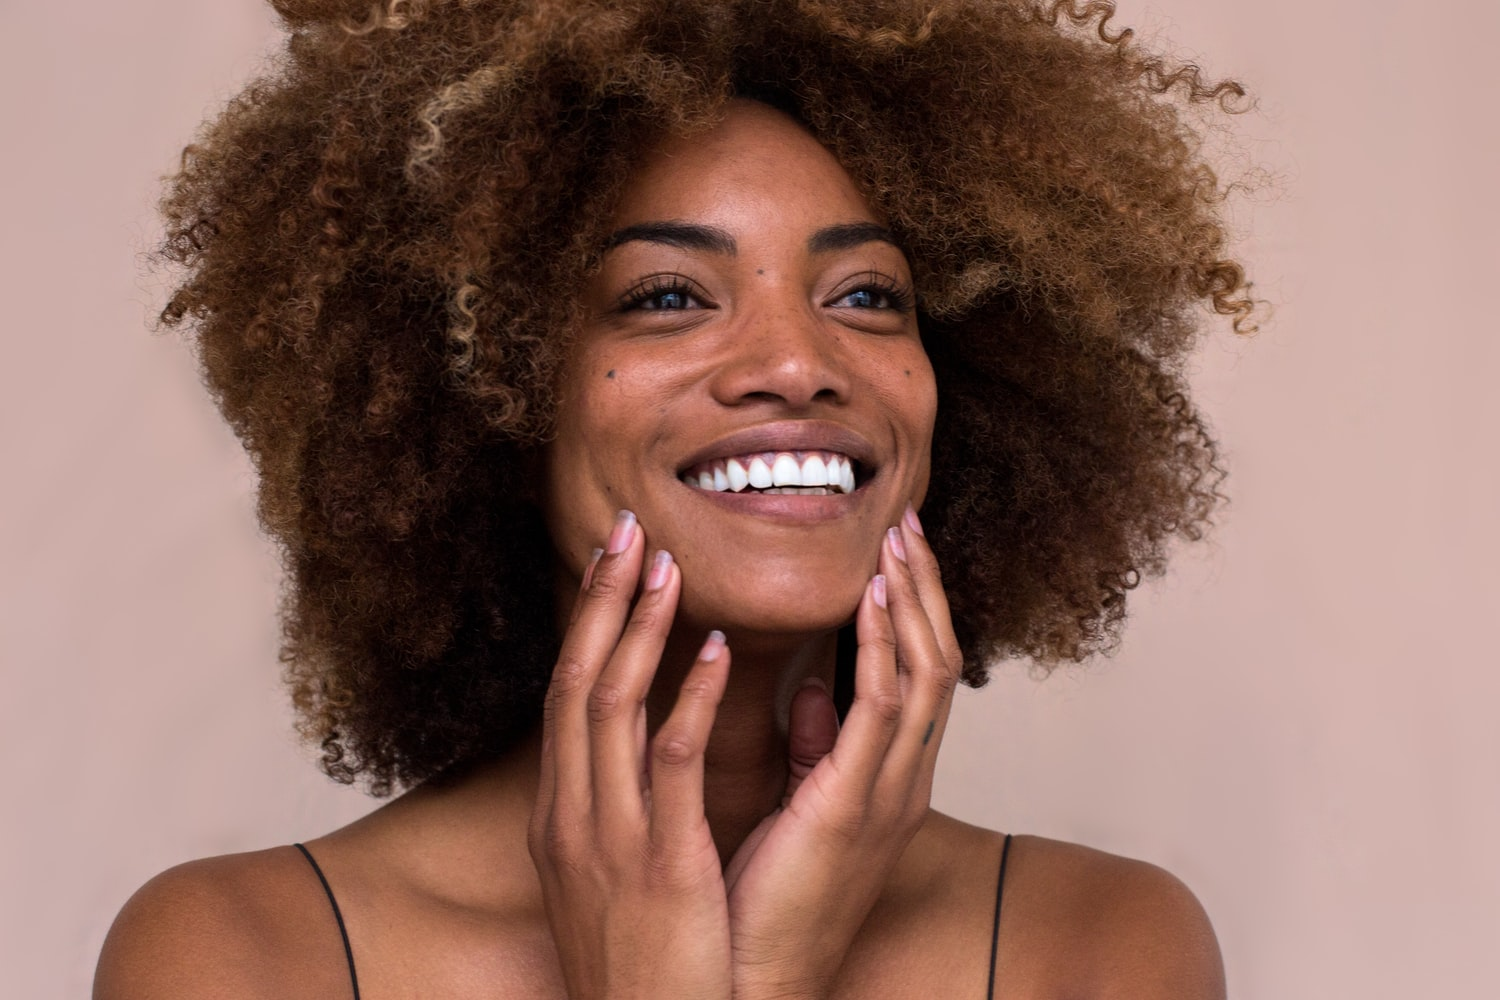 7 Best Foundations For Large Pores & Acne Scars (Buying Guide)